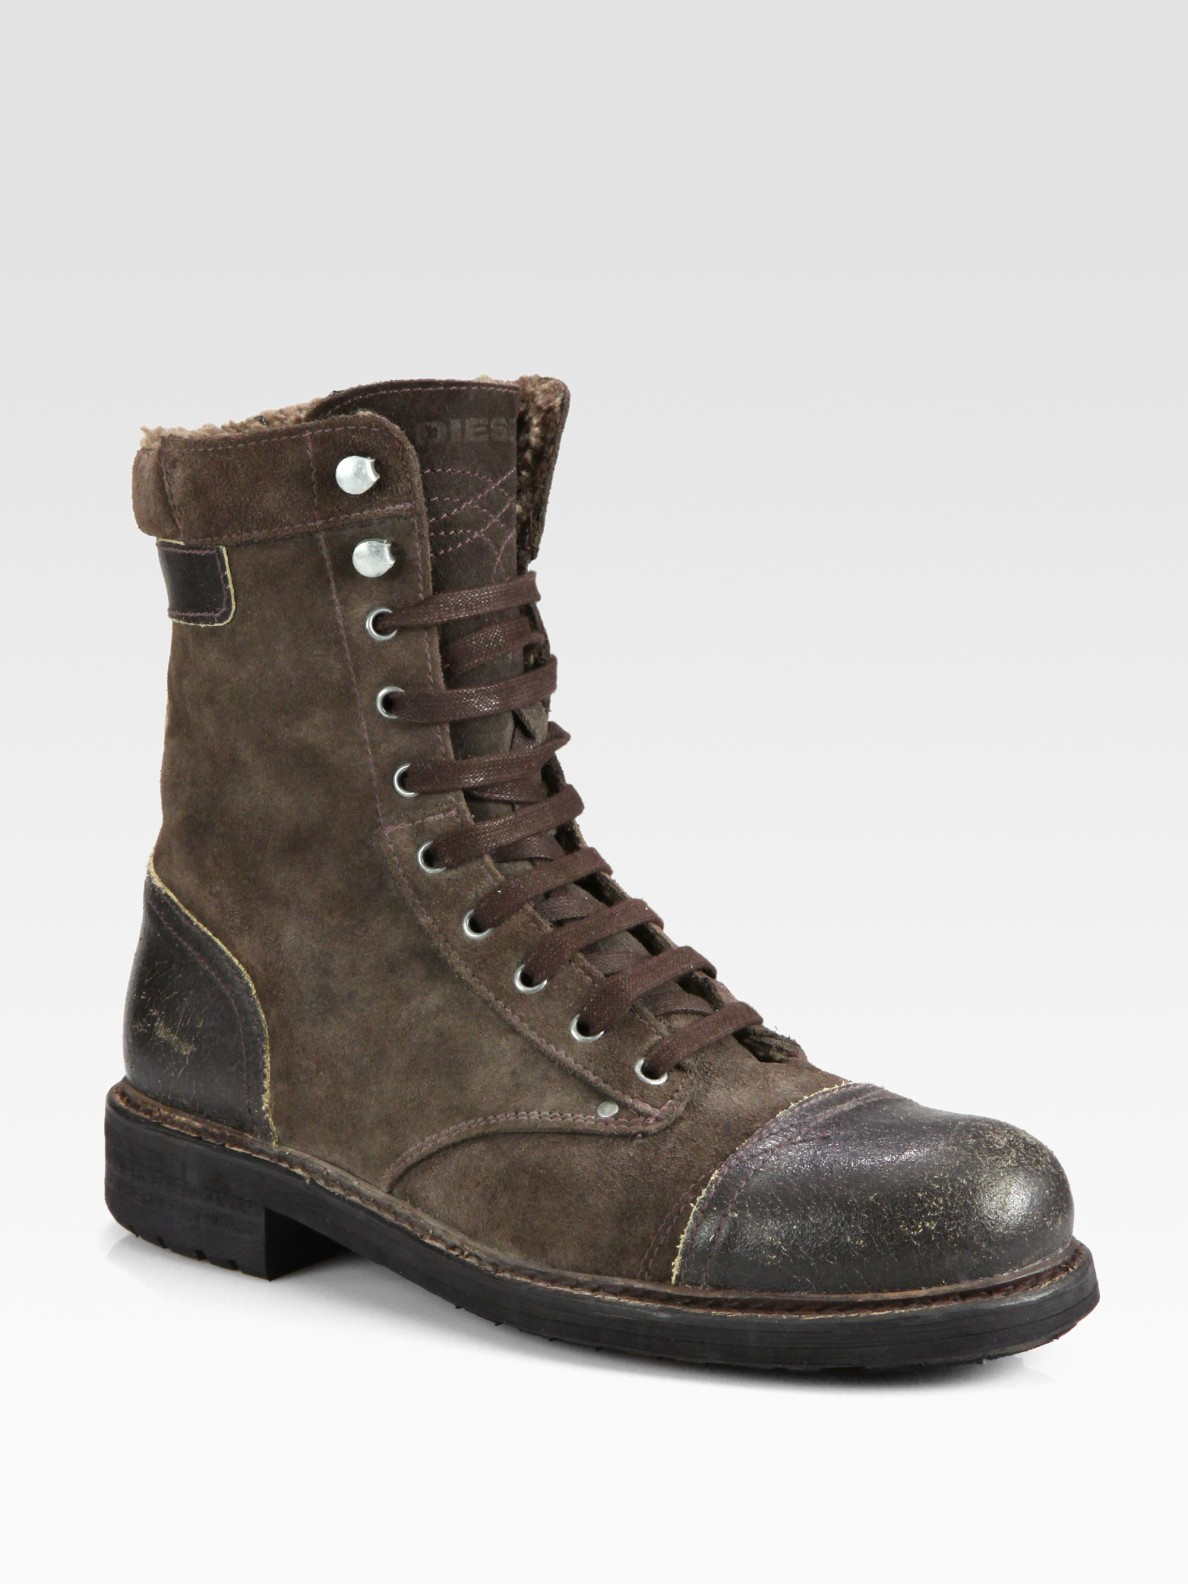 diesel butch cassidy laceup boot in brown for men